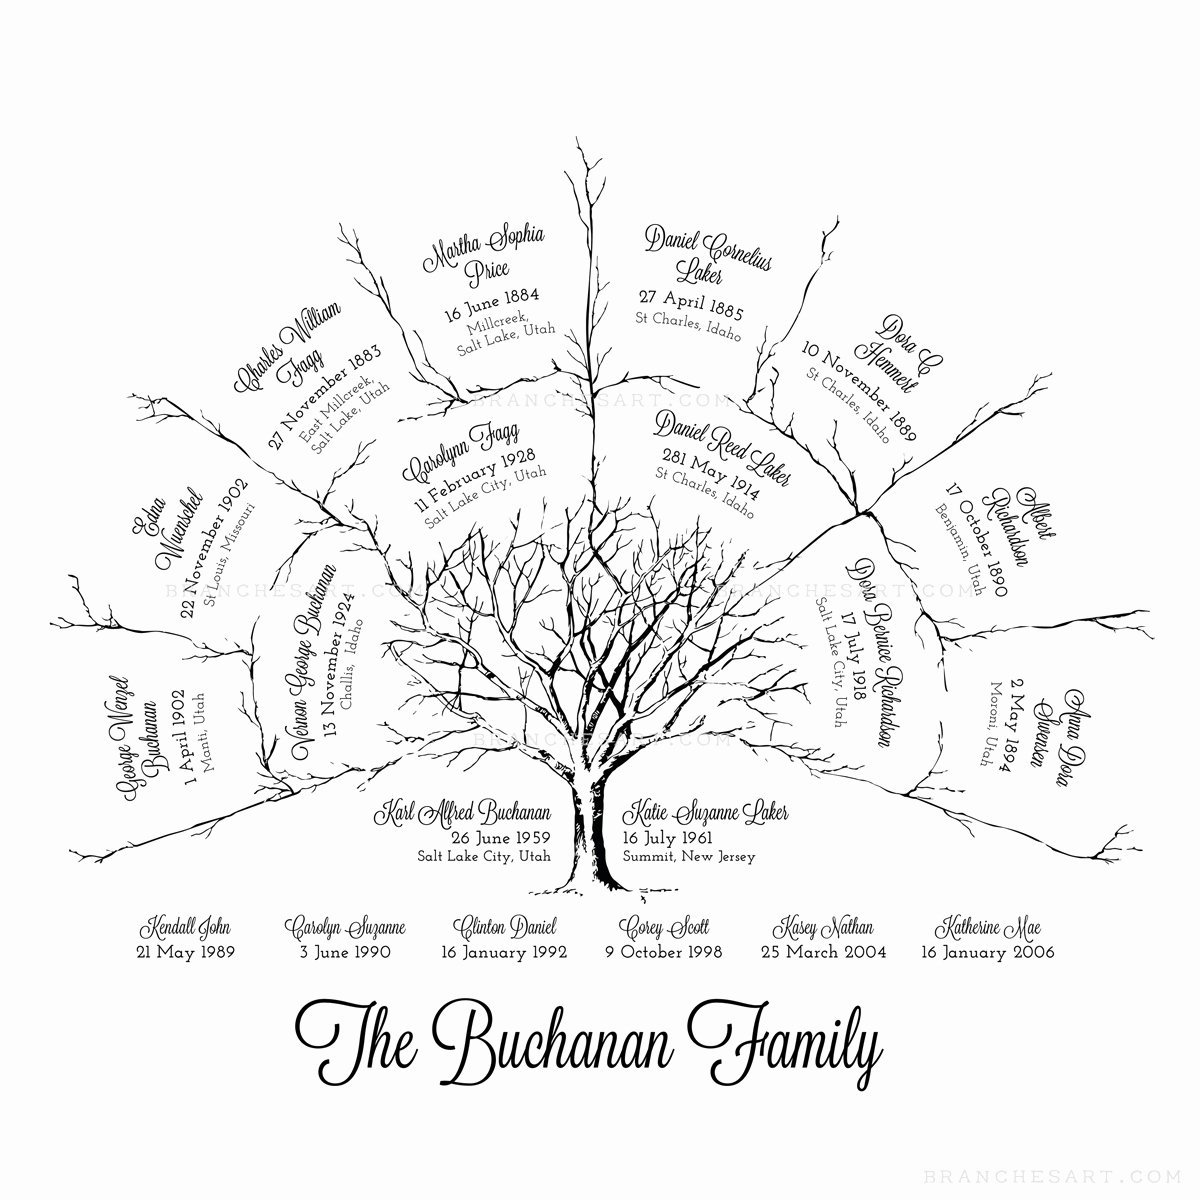 3 Generation Family Tree New 3 Generation Ancestor Family Tree – Branches